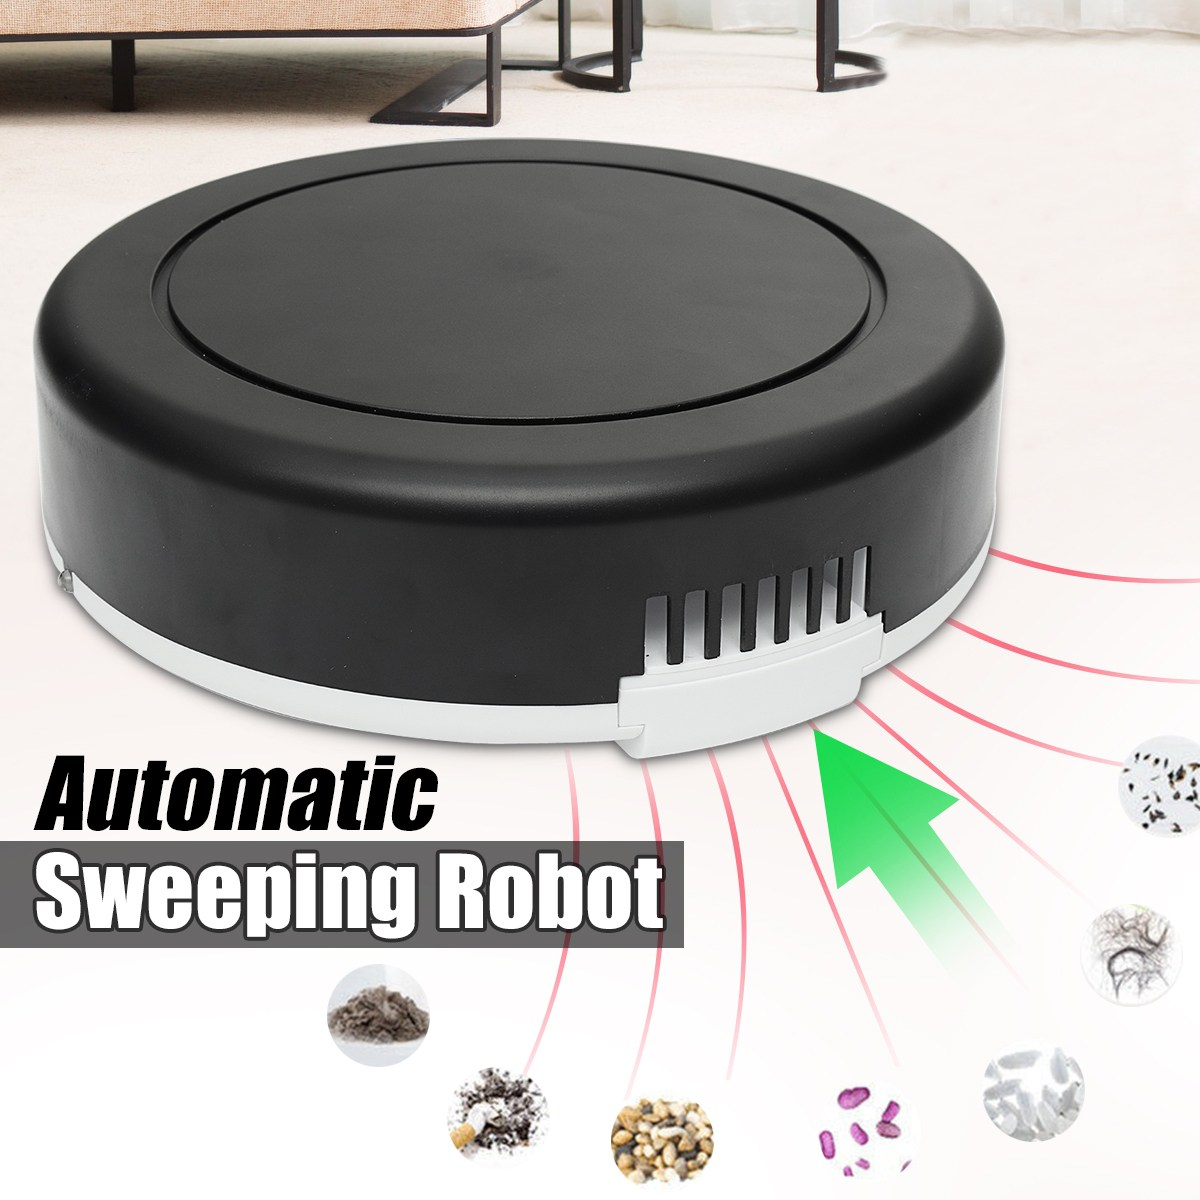 Automatic Sweeping Robot Slim Sweep Suction Drag One Machine Small Mini Rechargeable Vacuum Cleaner Sweeping free shipping multifunctional smart vacuum cleaner for home sweep vacuum mop sterilize lcd touch button schedule virtual wall